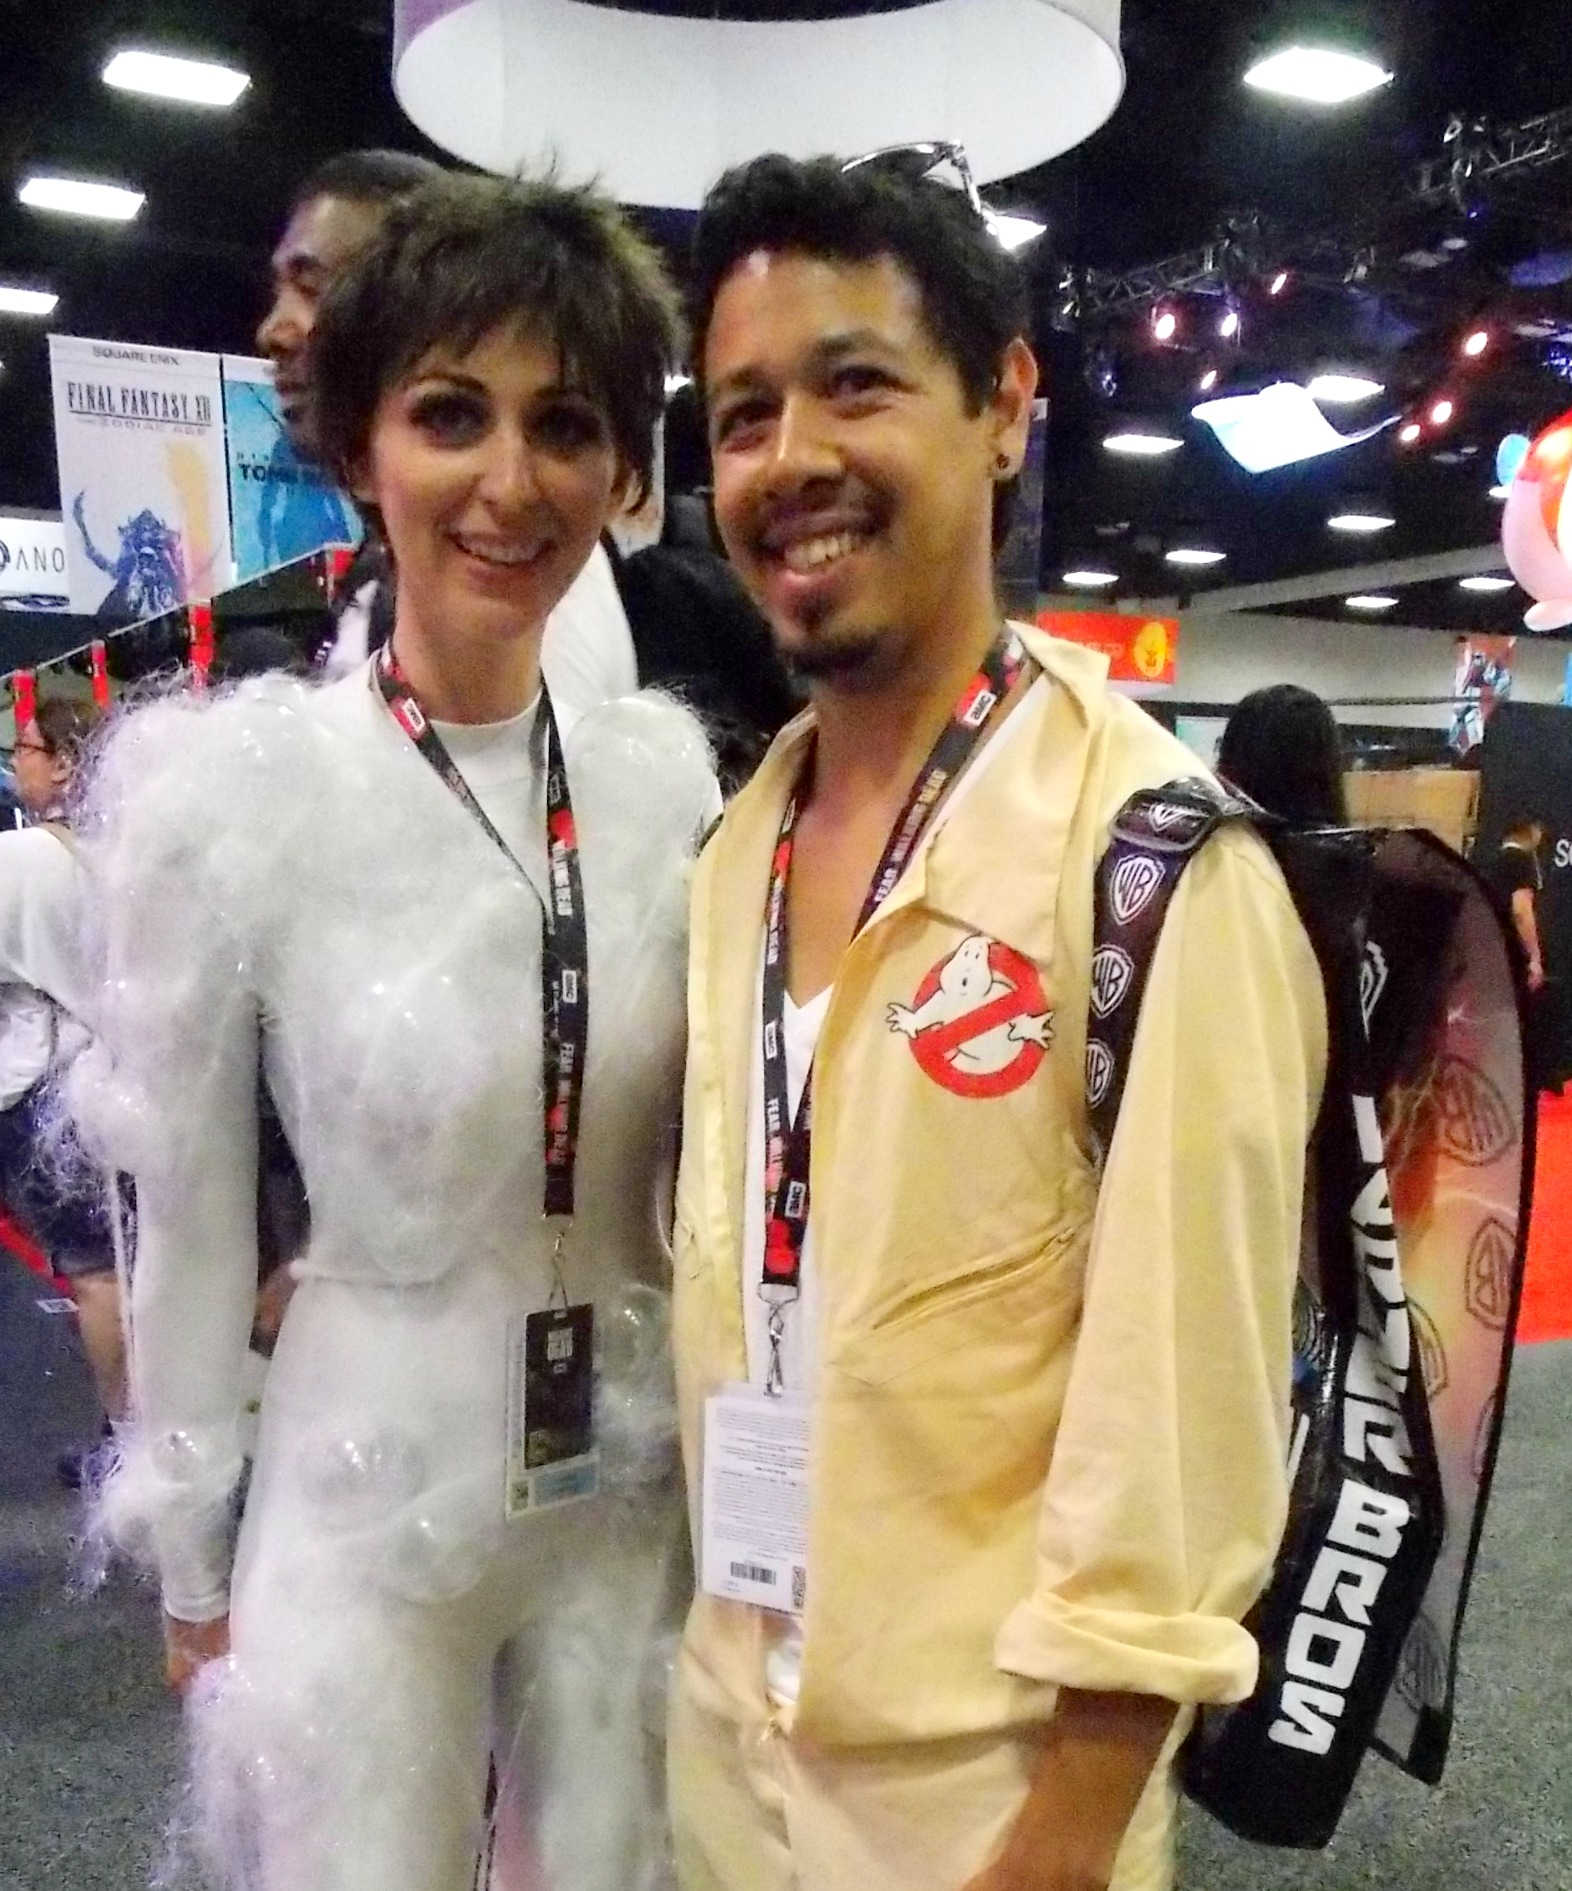 Gozer the Gozerian and A Ghostbuster